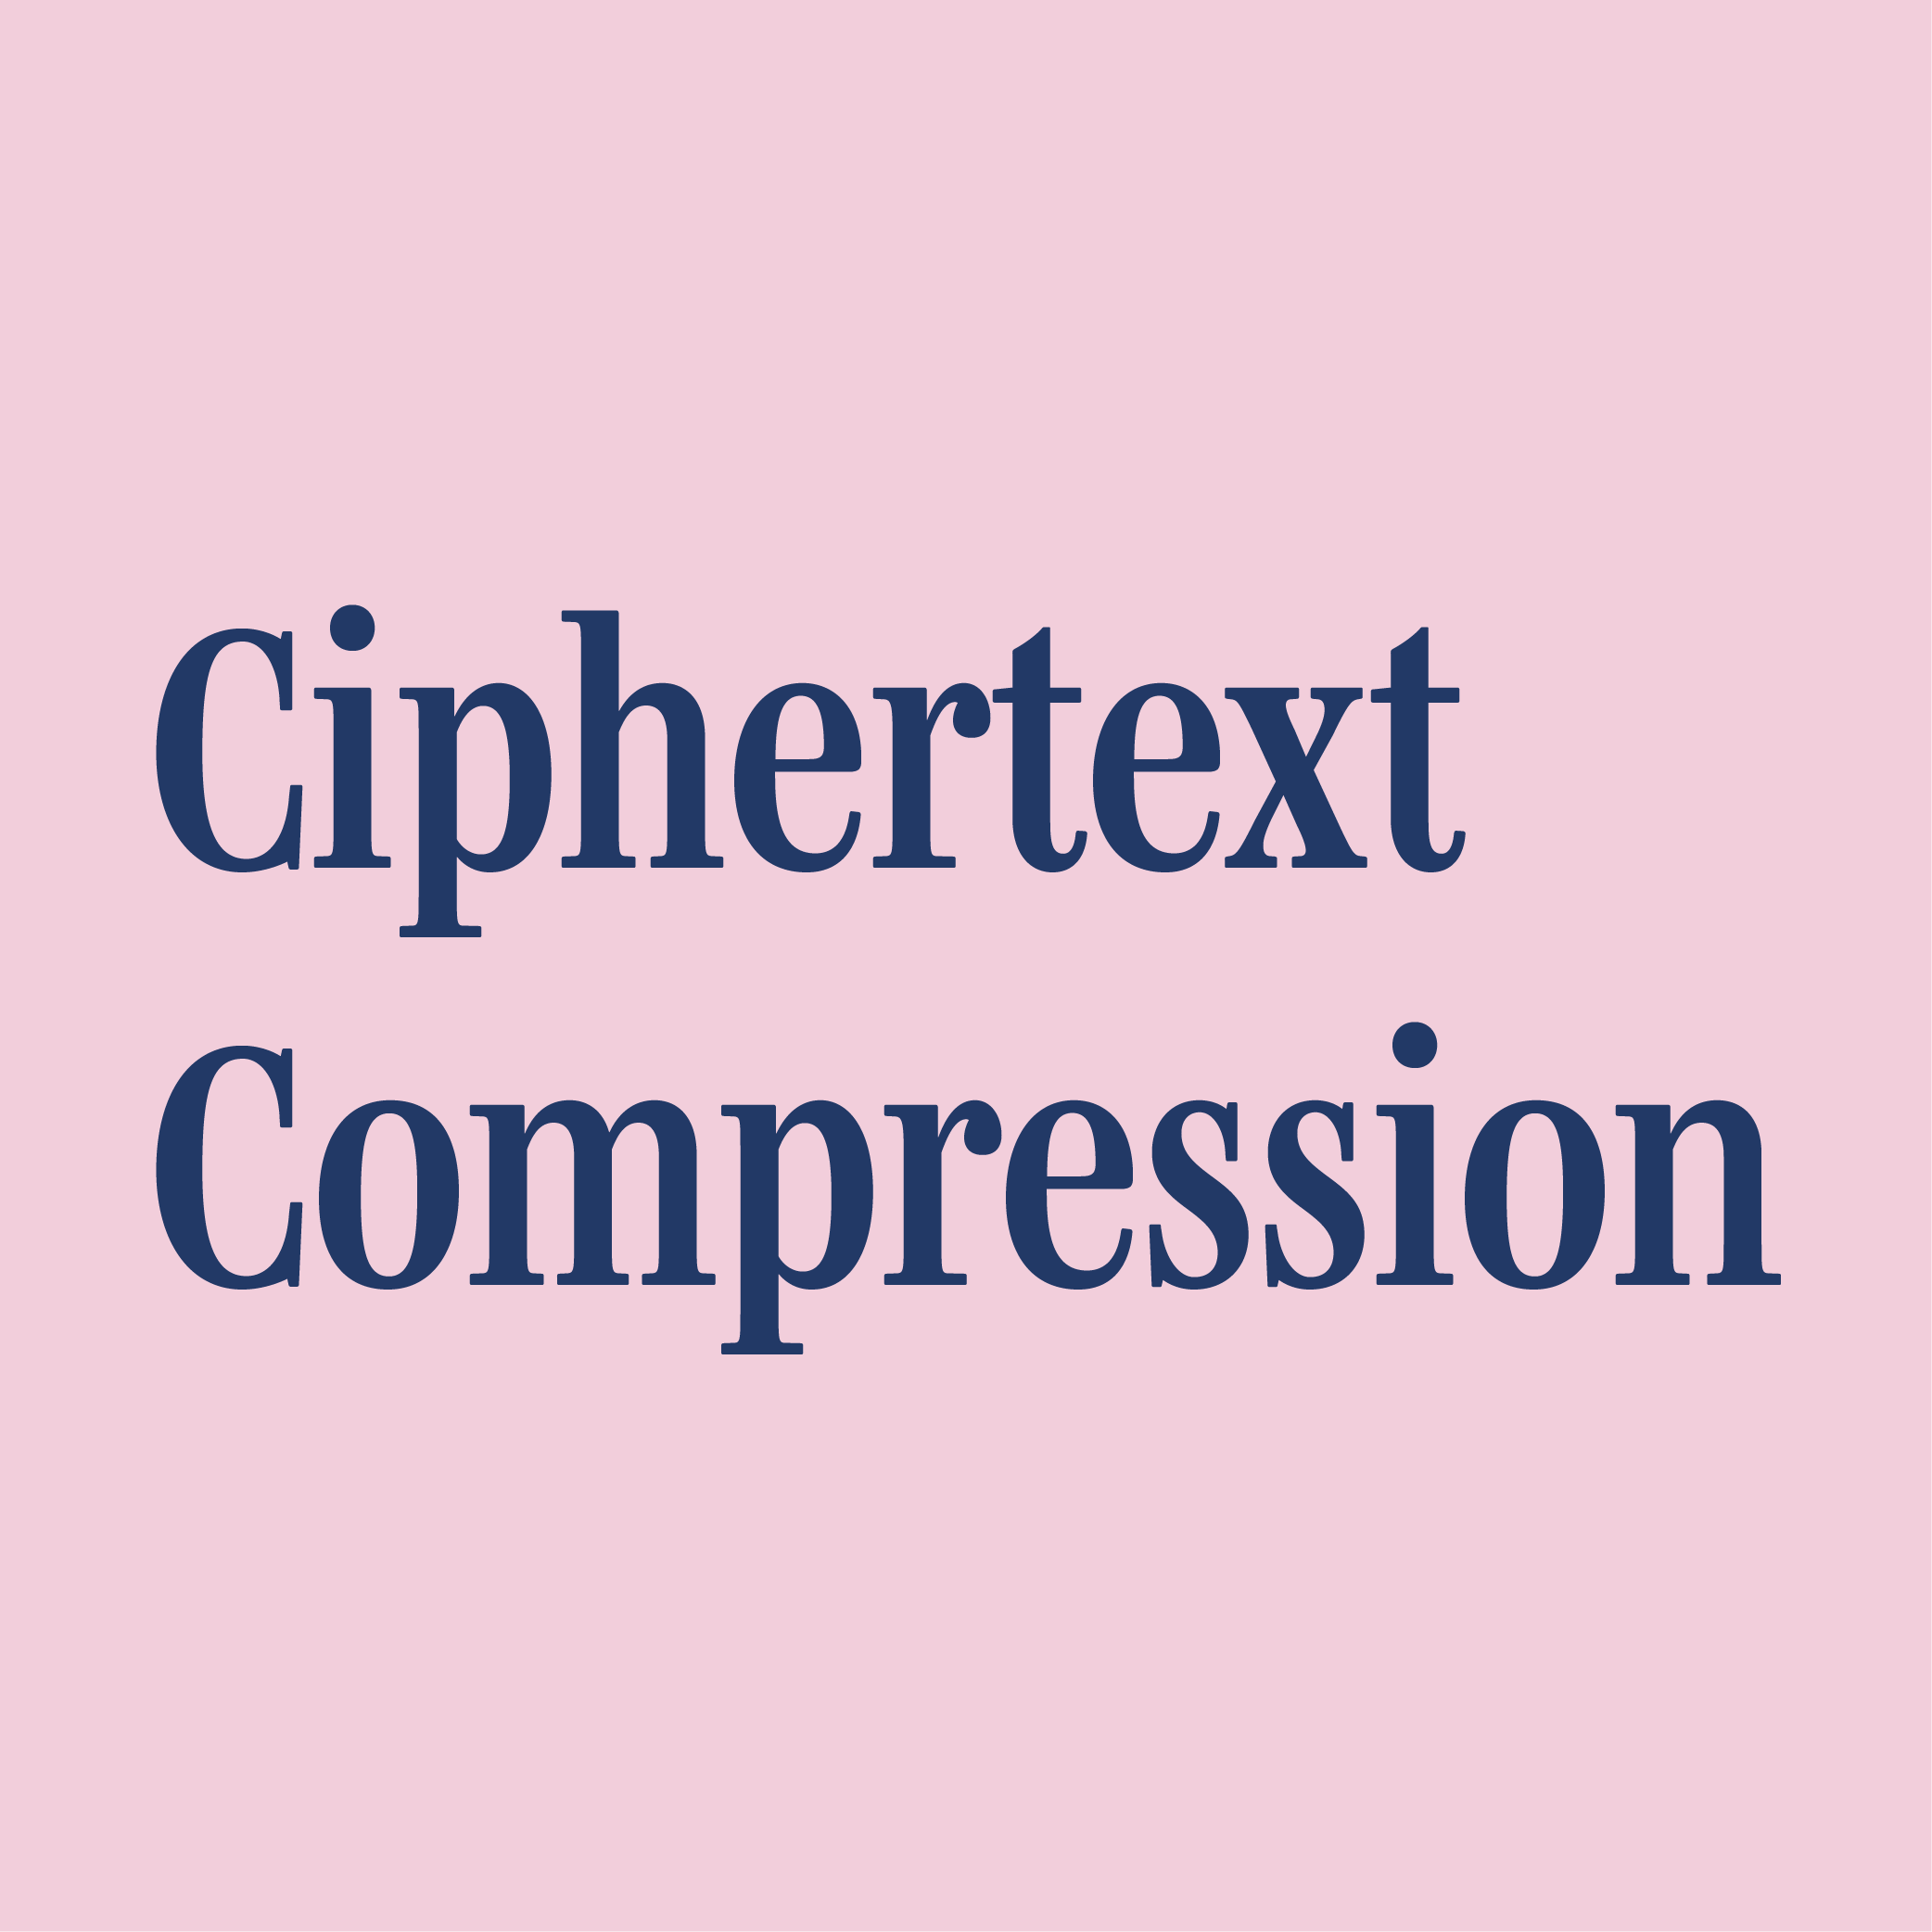 Logo with the text 'Ciphertext Compression'.